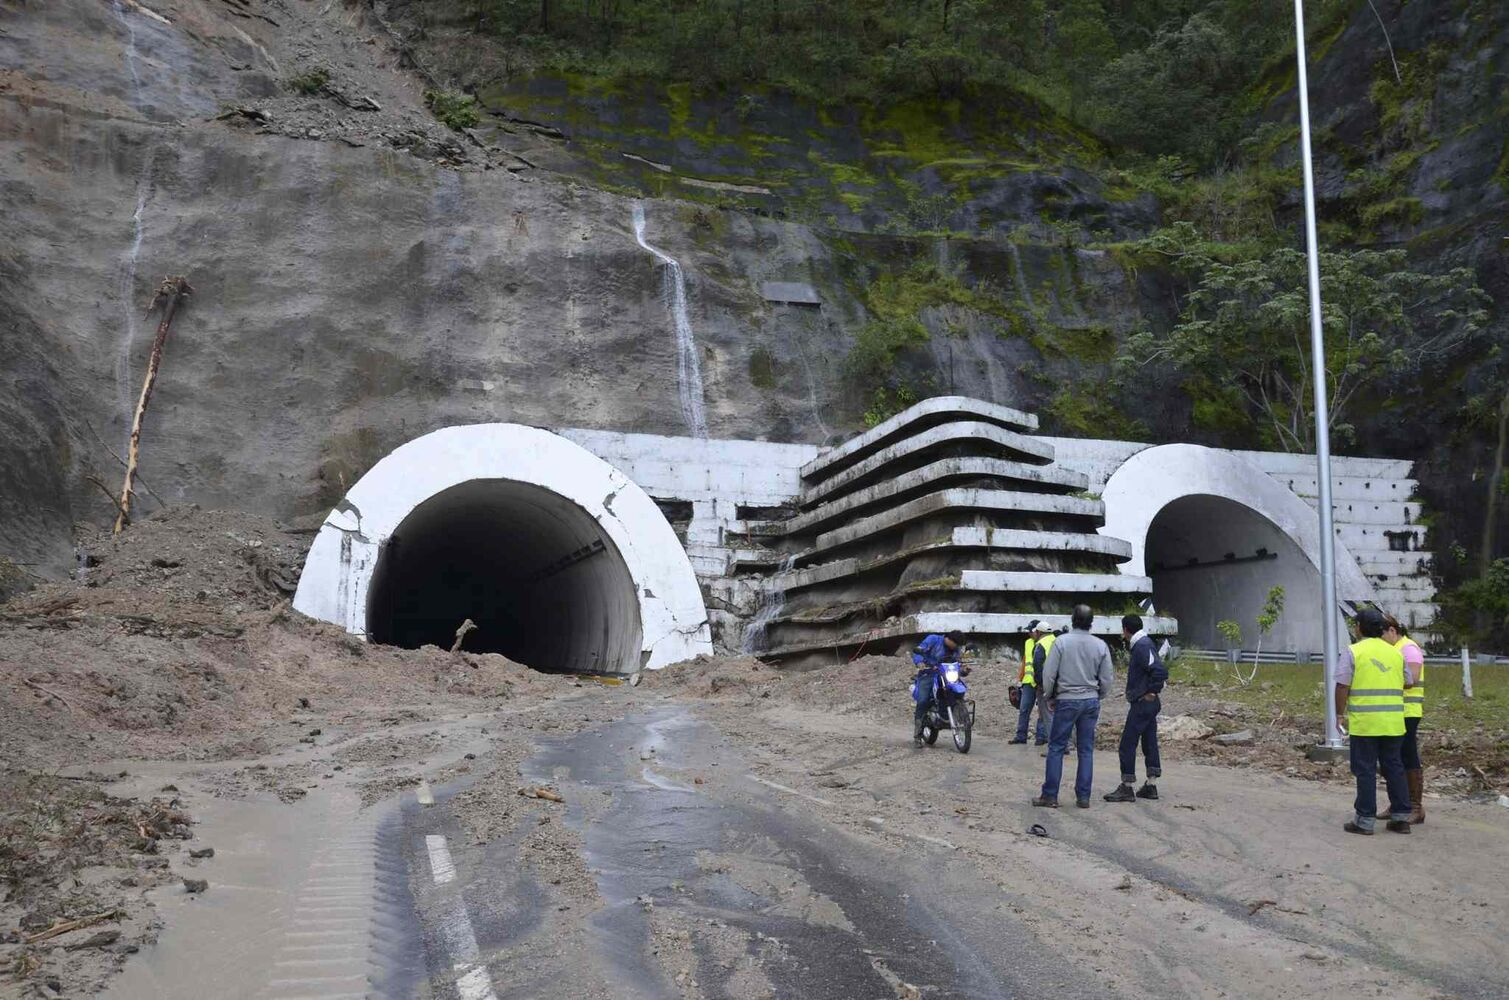 People stand at the entrance to the badly damaged Agua de Obispo tunnel that connects Acapulco and Chilpancingo, near Chilpancingo, Mexico, Tuesday, Sept. 17, 2013. As many as 60,000 tourists, many of whom traveled from Mexico City for a long holiday weekend, found themselves stranded in Acapulco, with the airport flooded and highways blocked by landslides and water caused by Tropical Storm Manuel.